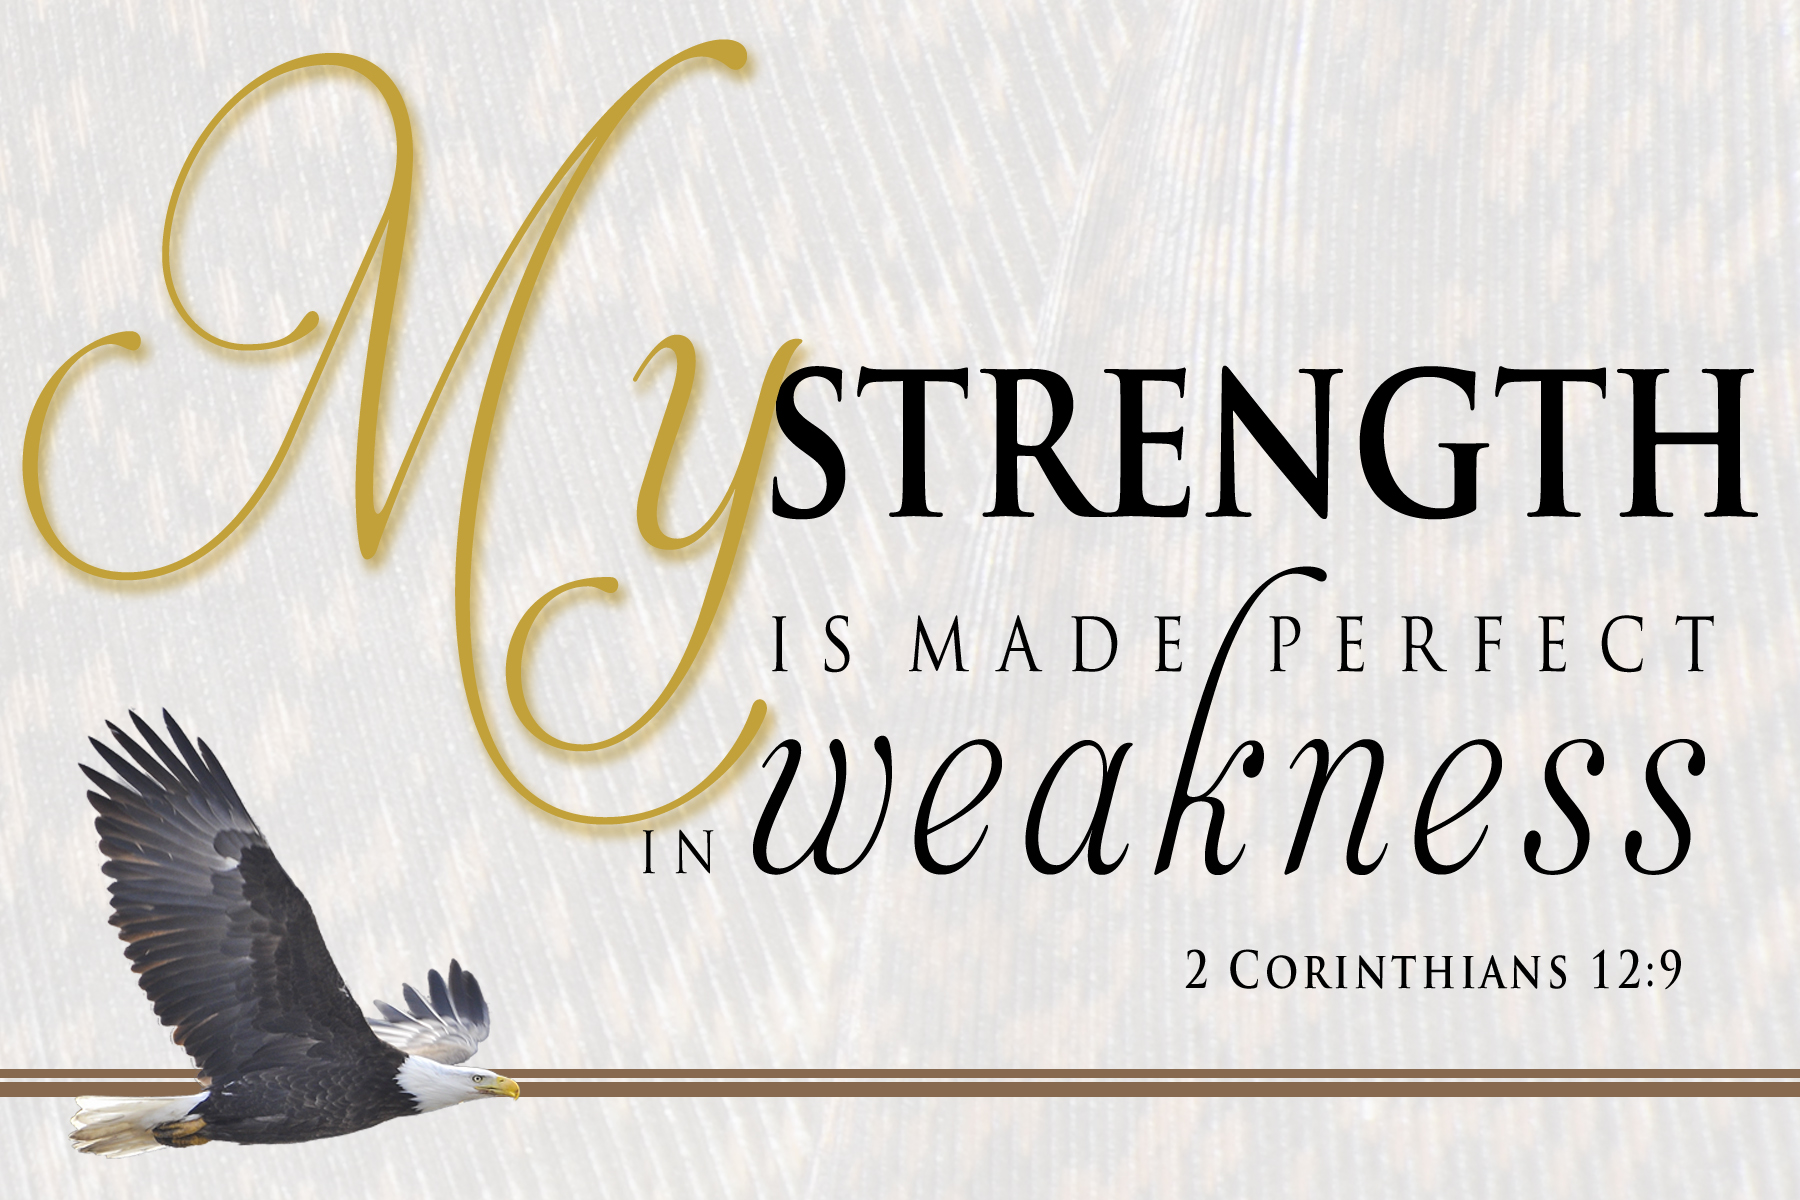 Quotes About Strength In Weakness 274 Quotes